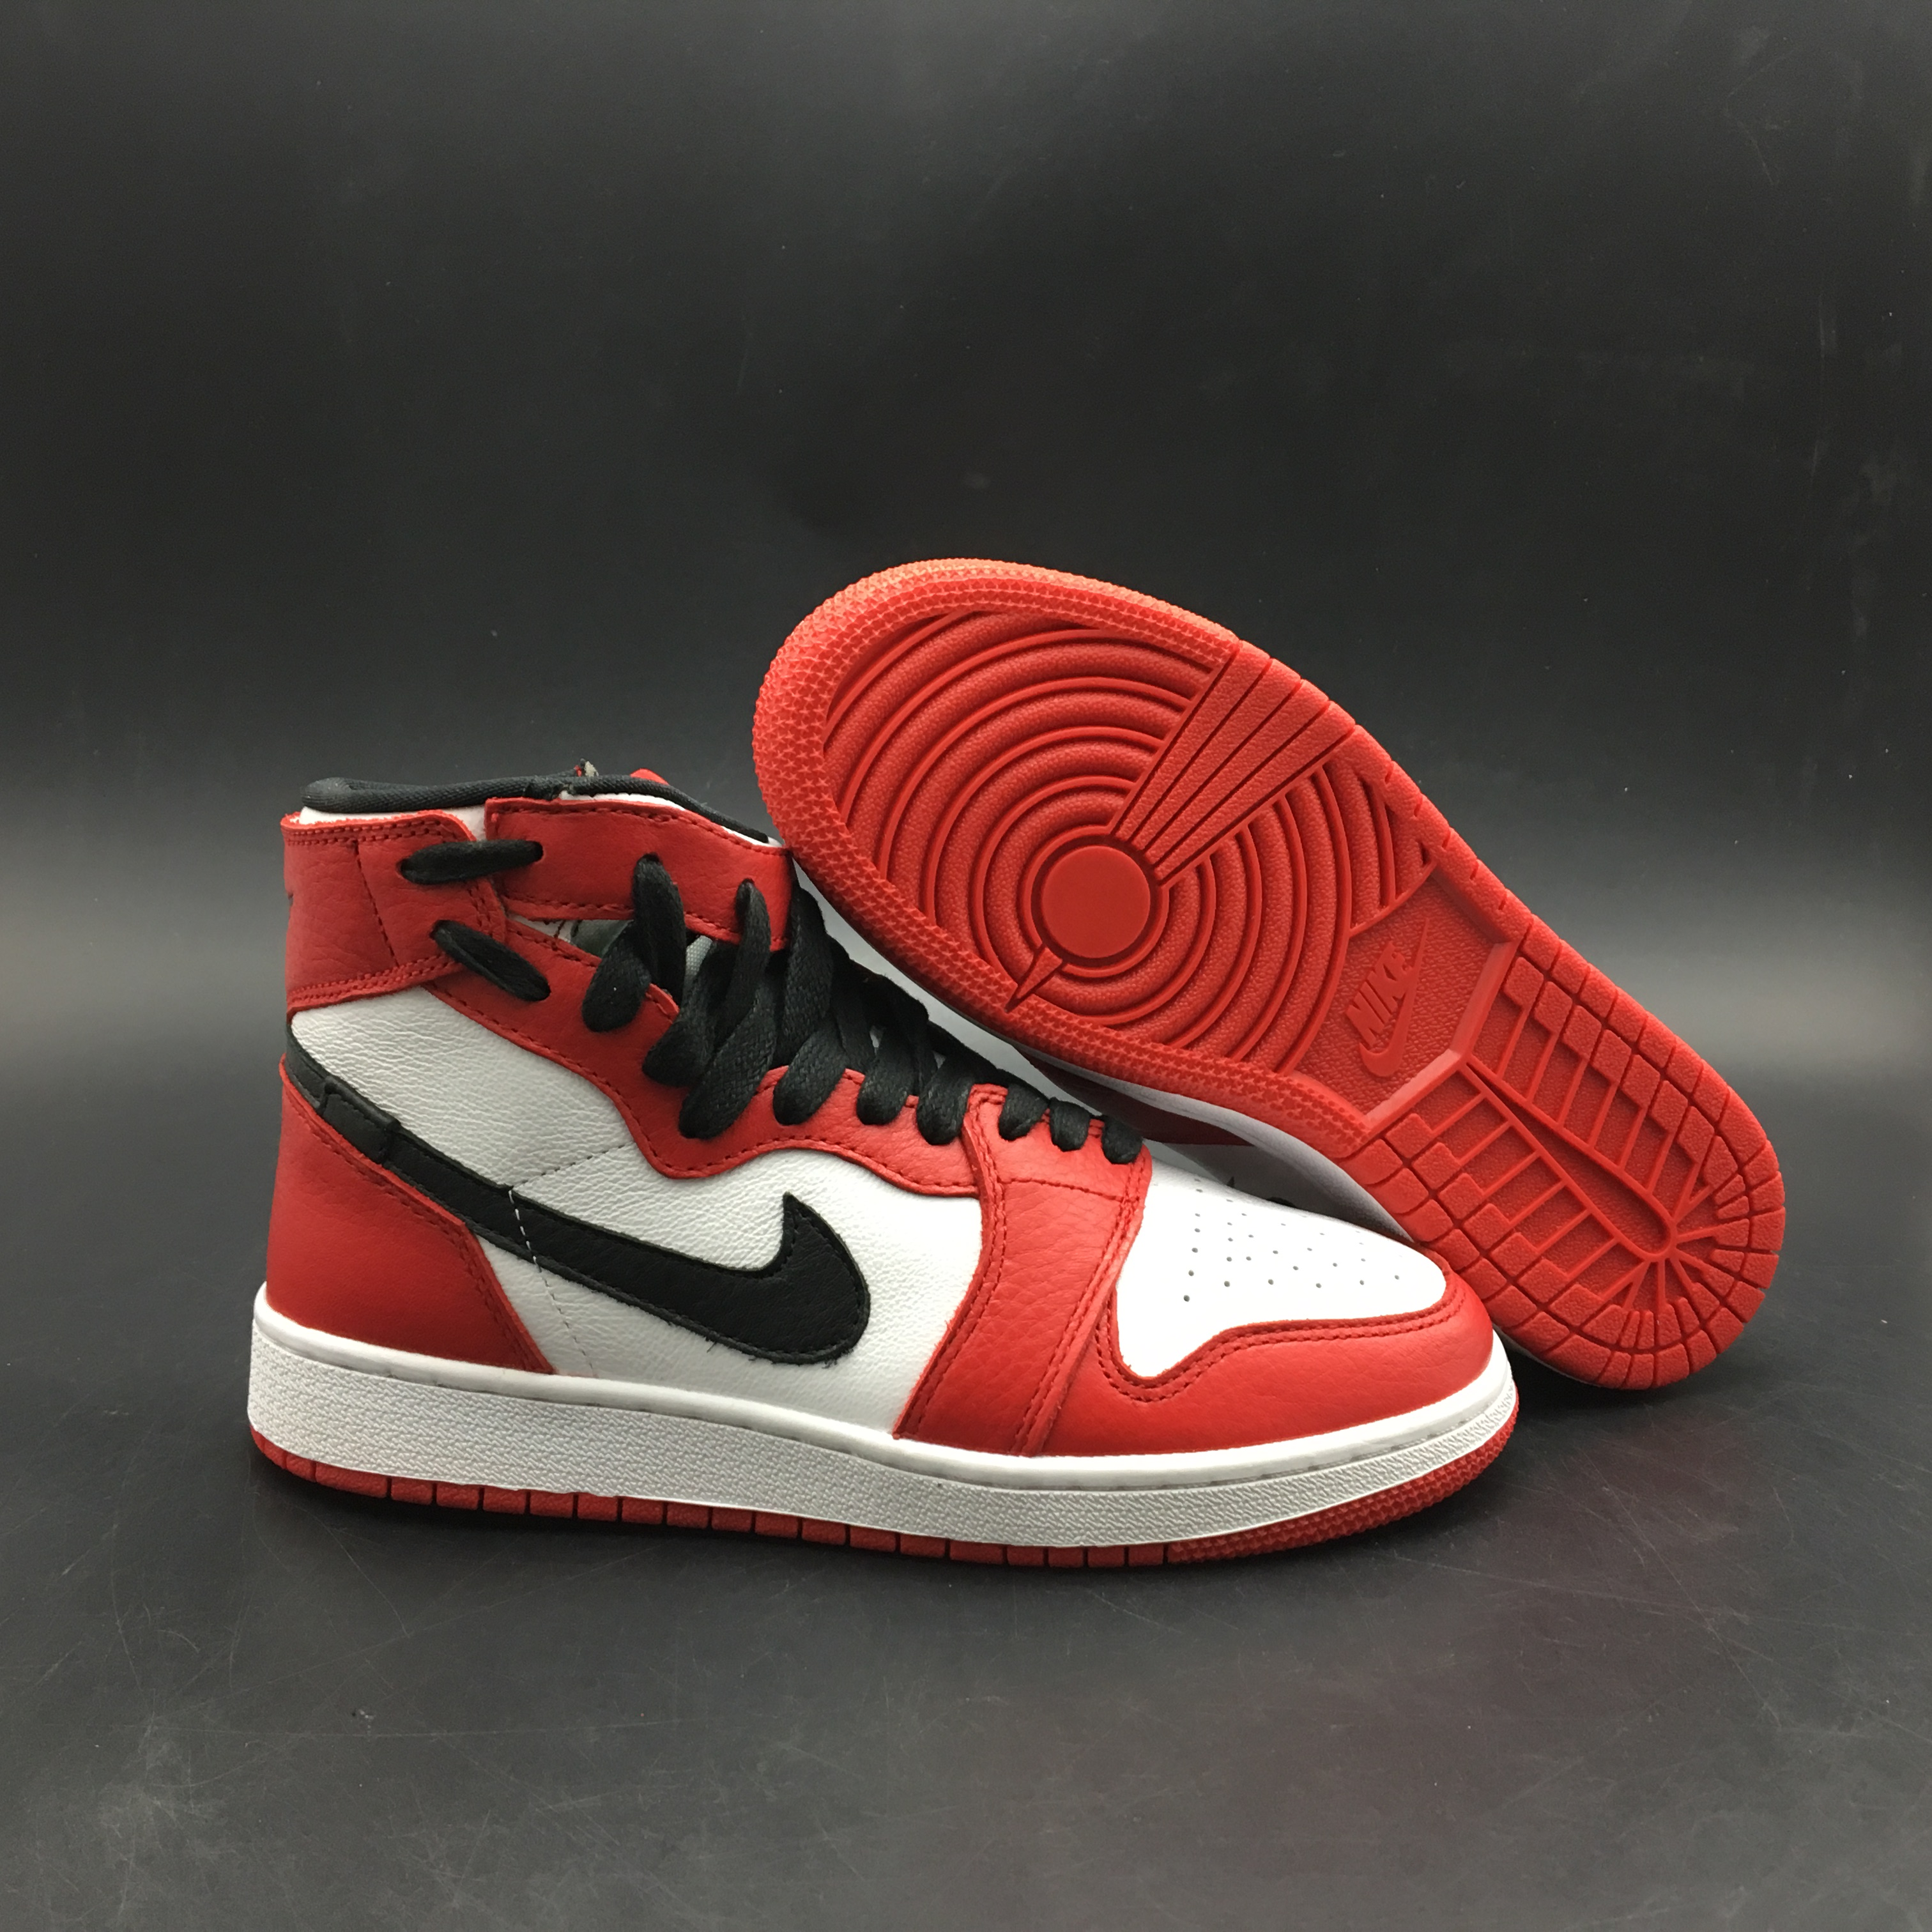 Air Jordan 1 REBEL XX OG TOP 3 Chicago Red White Black Shoes